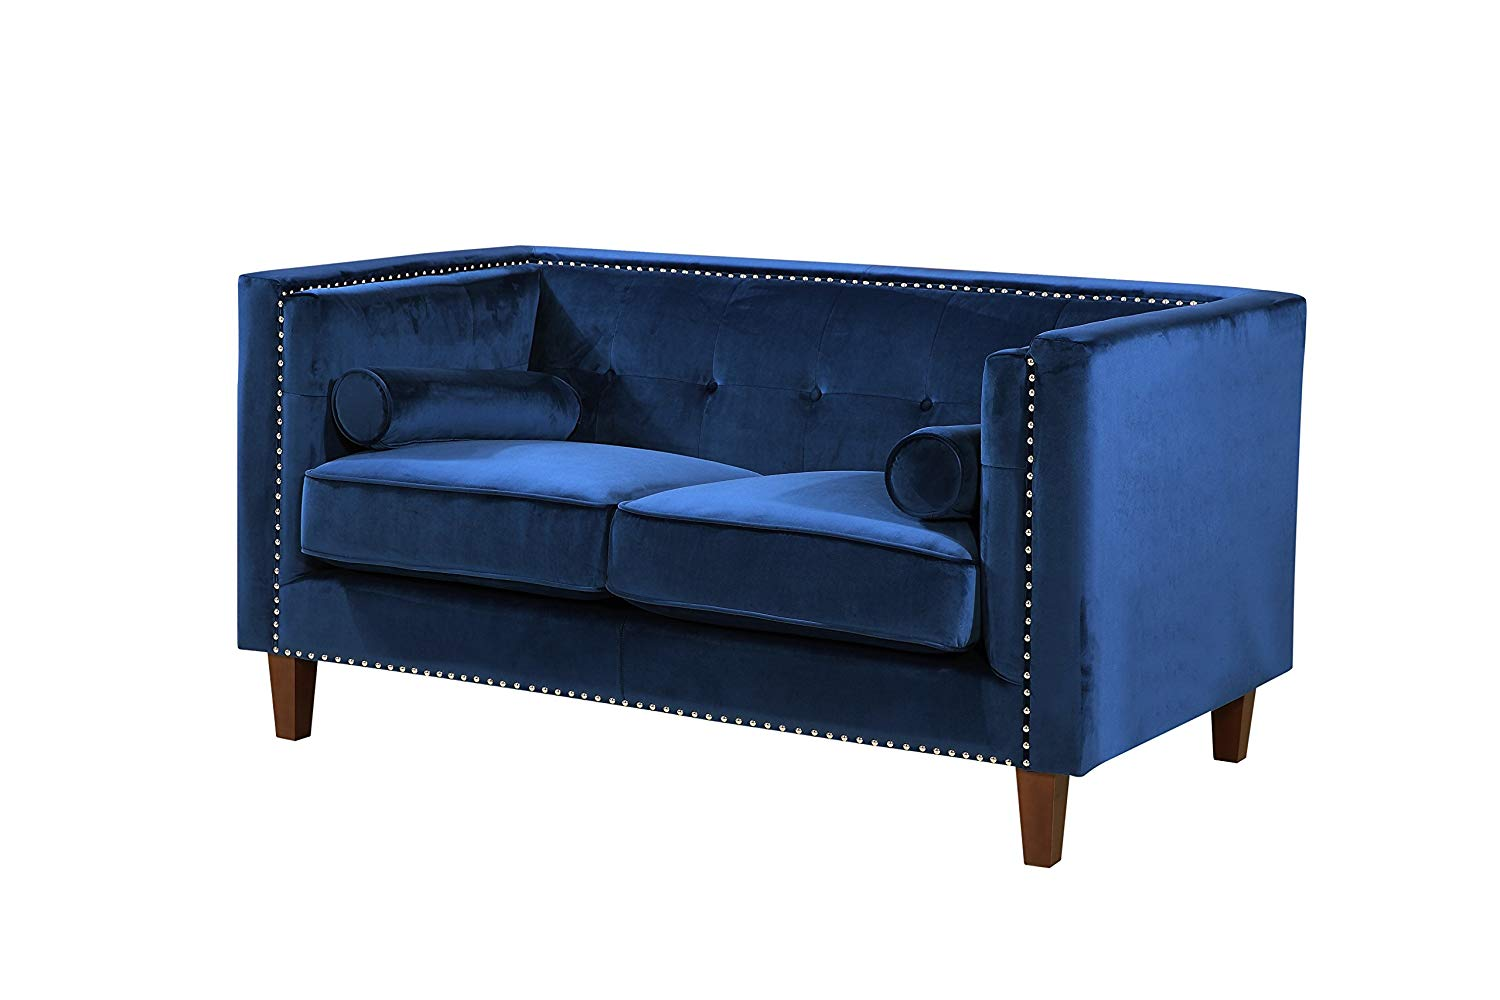 Container Furniture Direct S5369-L Kittleson Mid-Century Classic Chesterfield Living Room Loveseat, Blue